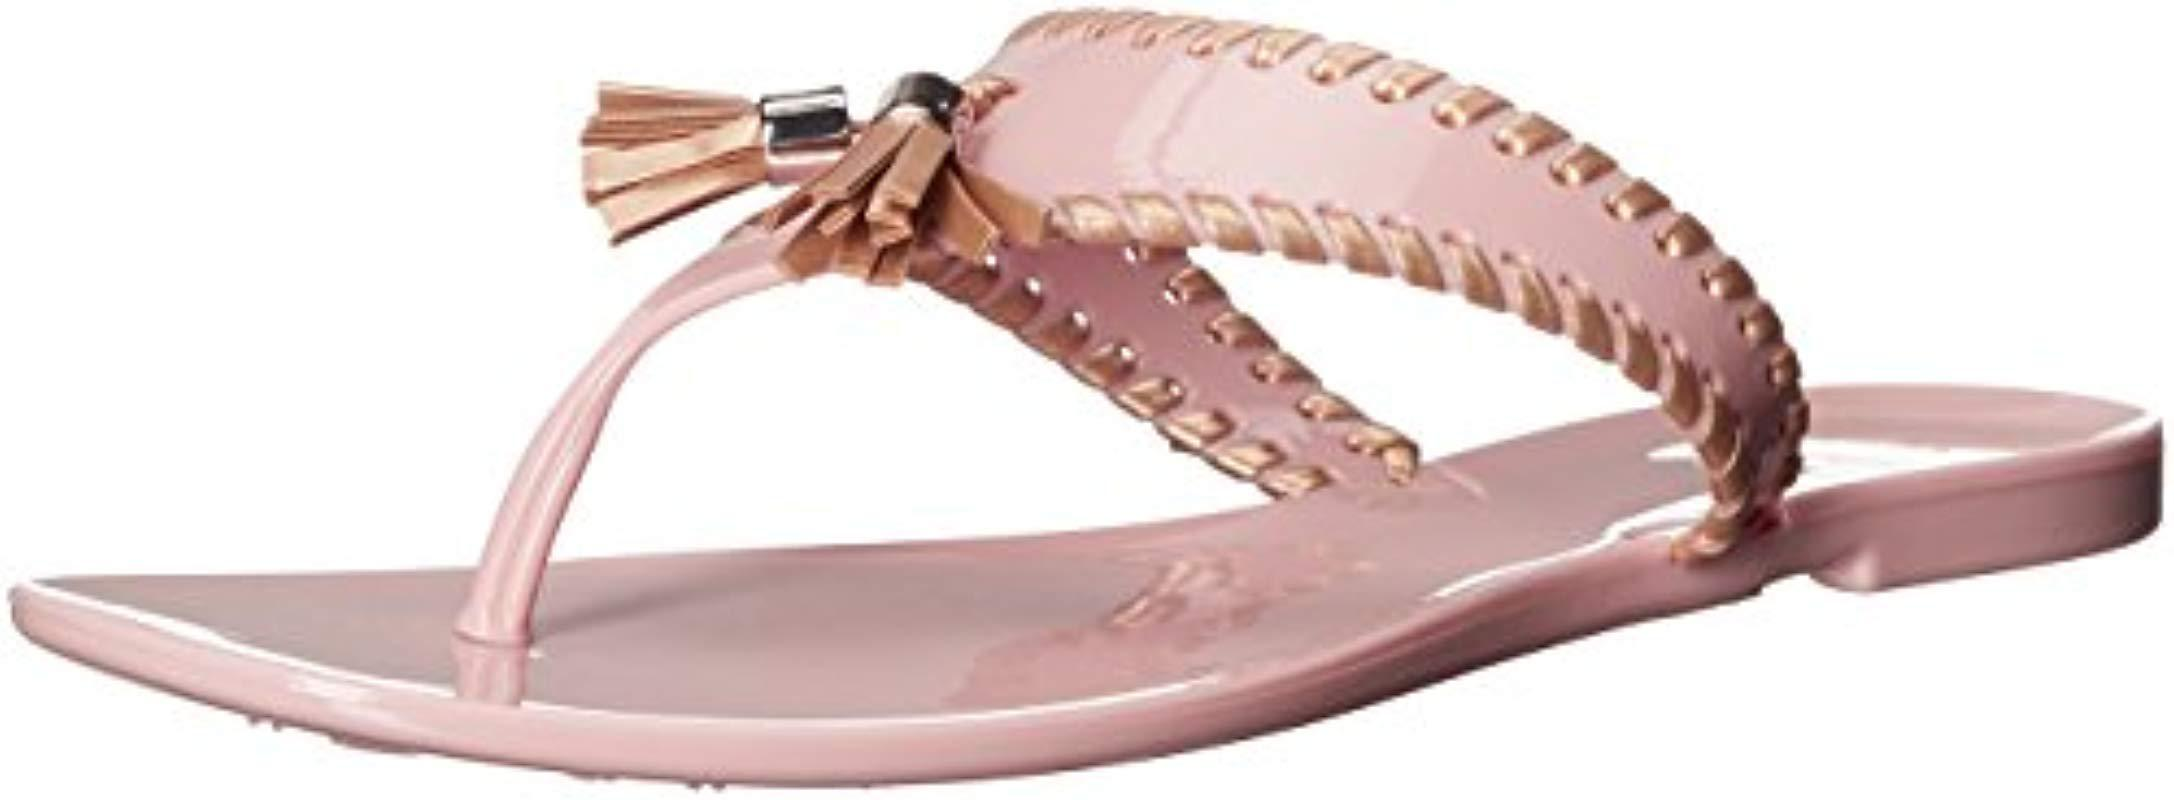 42092be26dba Lyst - Jack Rogers Alana Jelly Flip Flop in Pink - Save 11%